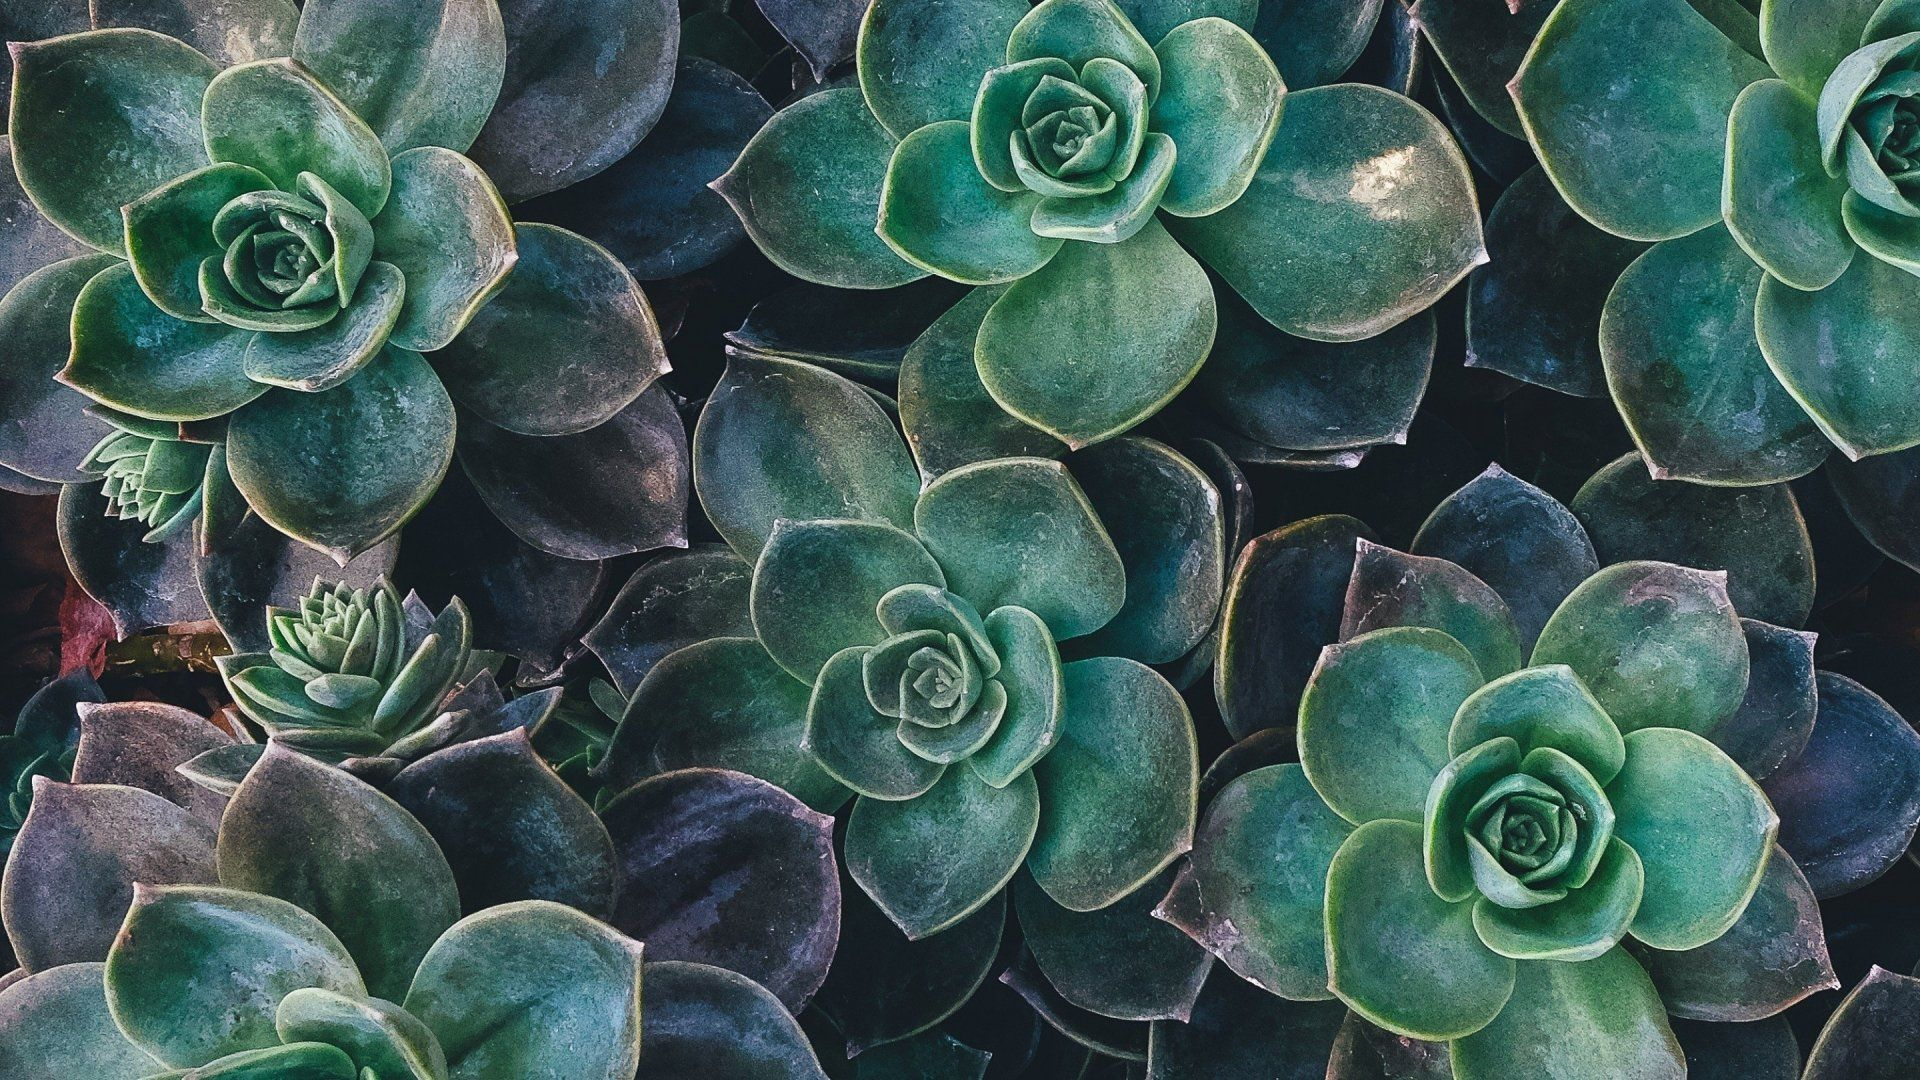 Plant Aesthetic Laptop Wallpapers - Top Free Plant ...